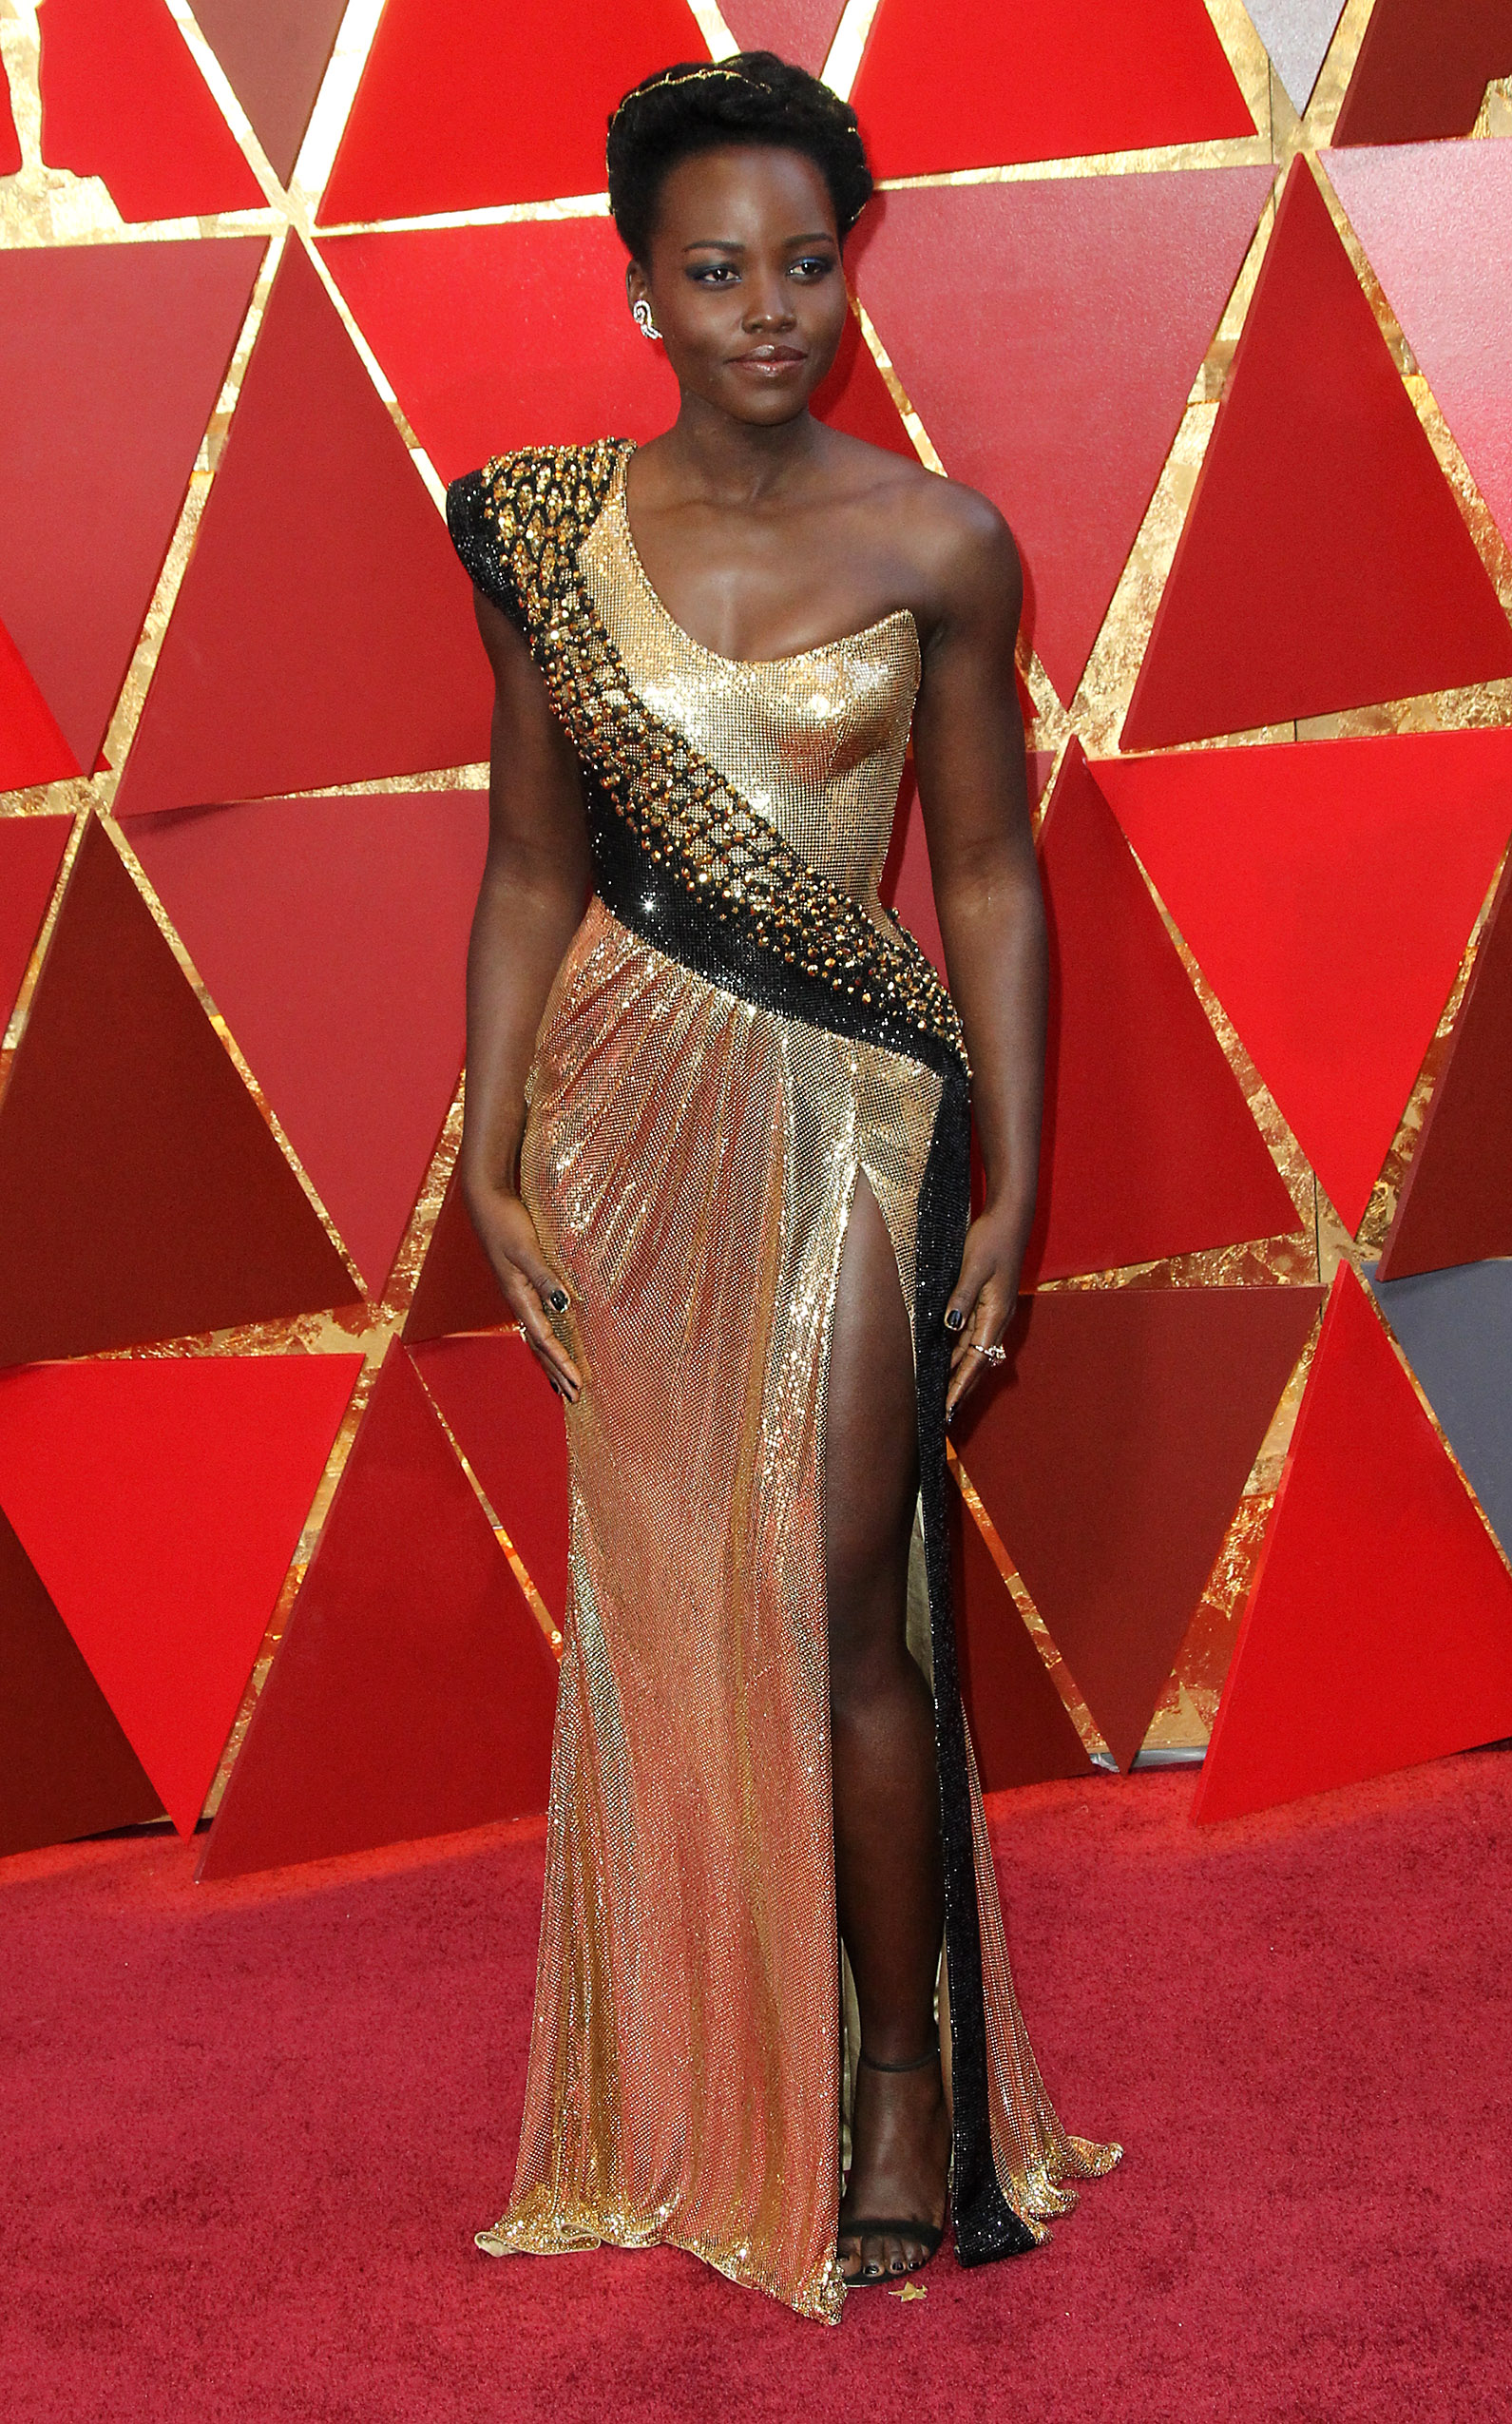 Lupita Nyong'o arrives at the 90th Annual Academy Awards (Oscars) held at the Dolby Theater in Hollywood, California. (Image: Adriana M. Barraza/WENN.com)<p></p>